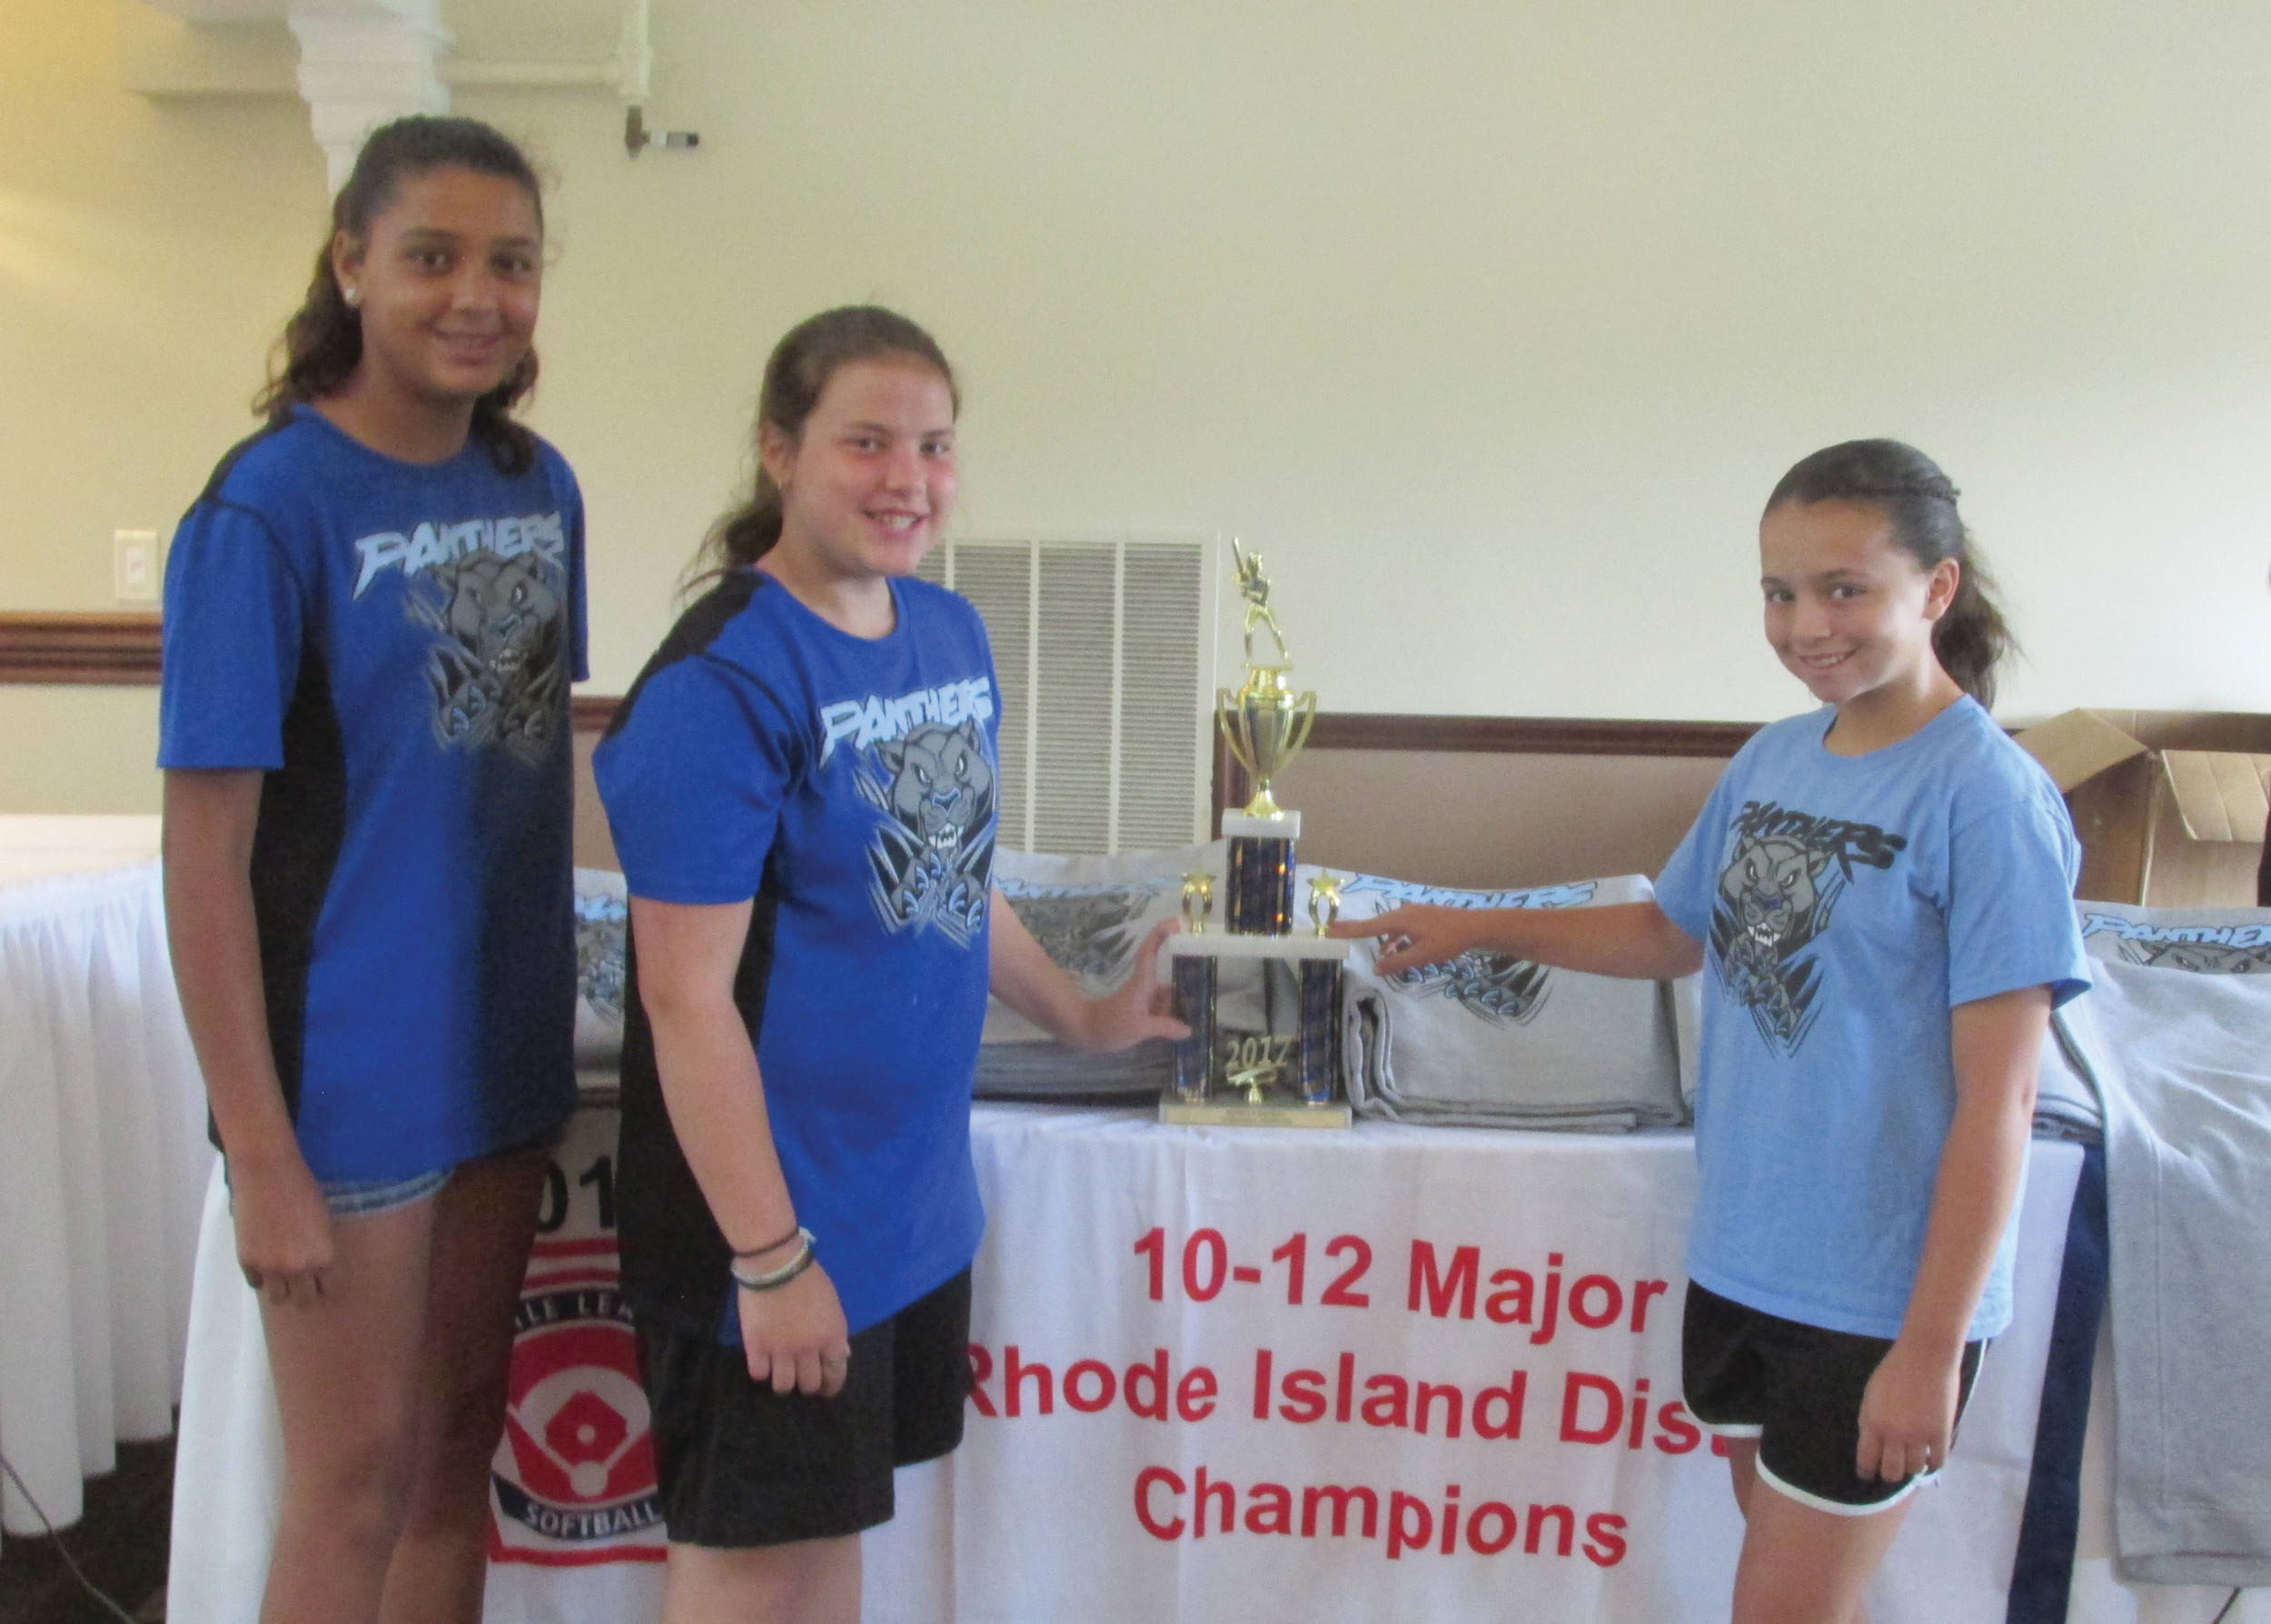 TALENTED TRIO: These three girls - Alyssa Andrade, Gianna Robinson and Hannah Calabro - are standing in front of the R.I. Little League District 4 Championship trophy that was on display Saturday at Cranston Country Club.